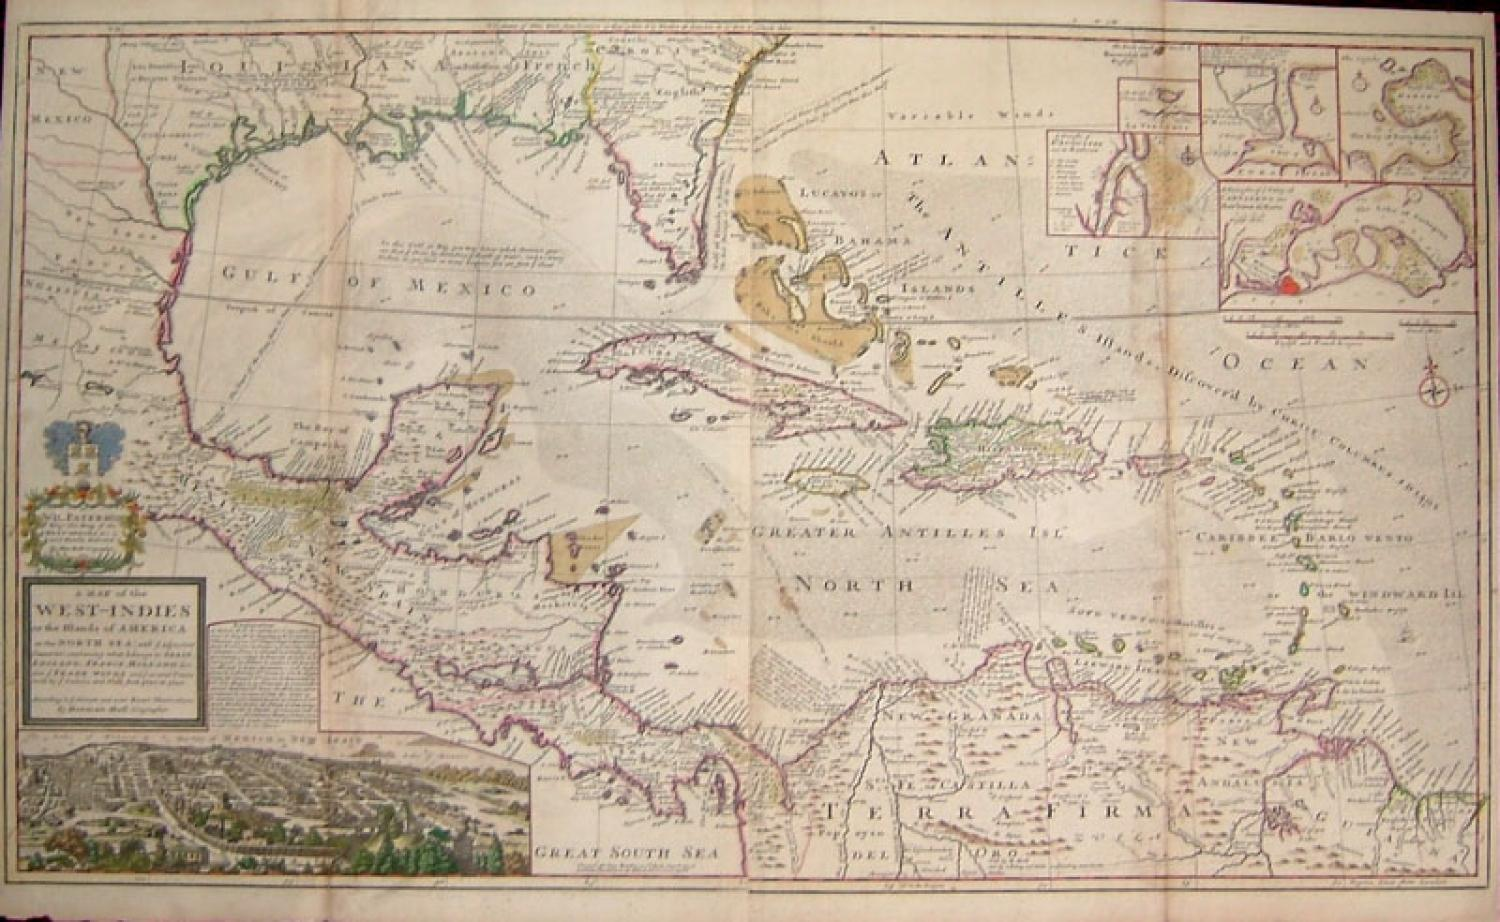 SOLD A Map of the West Indies or the Islands of America